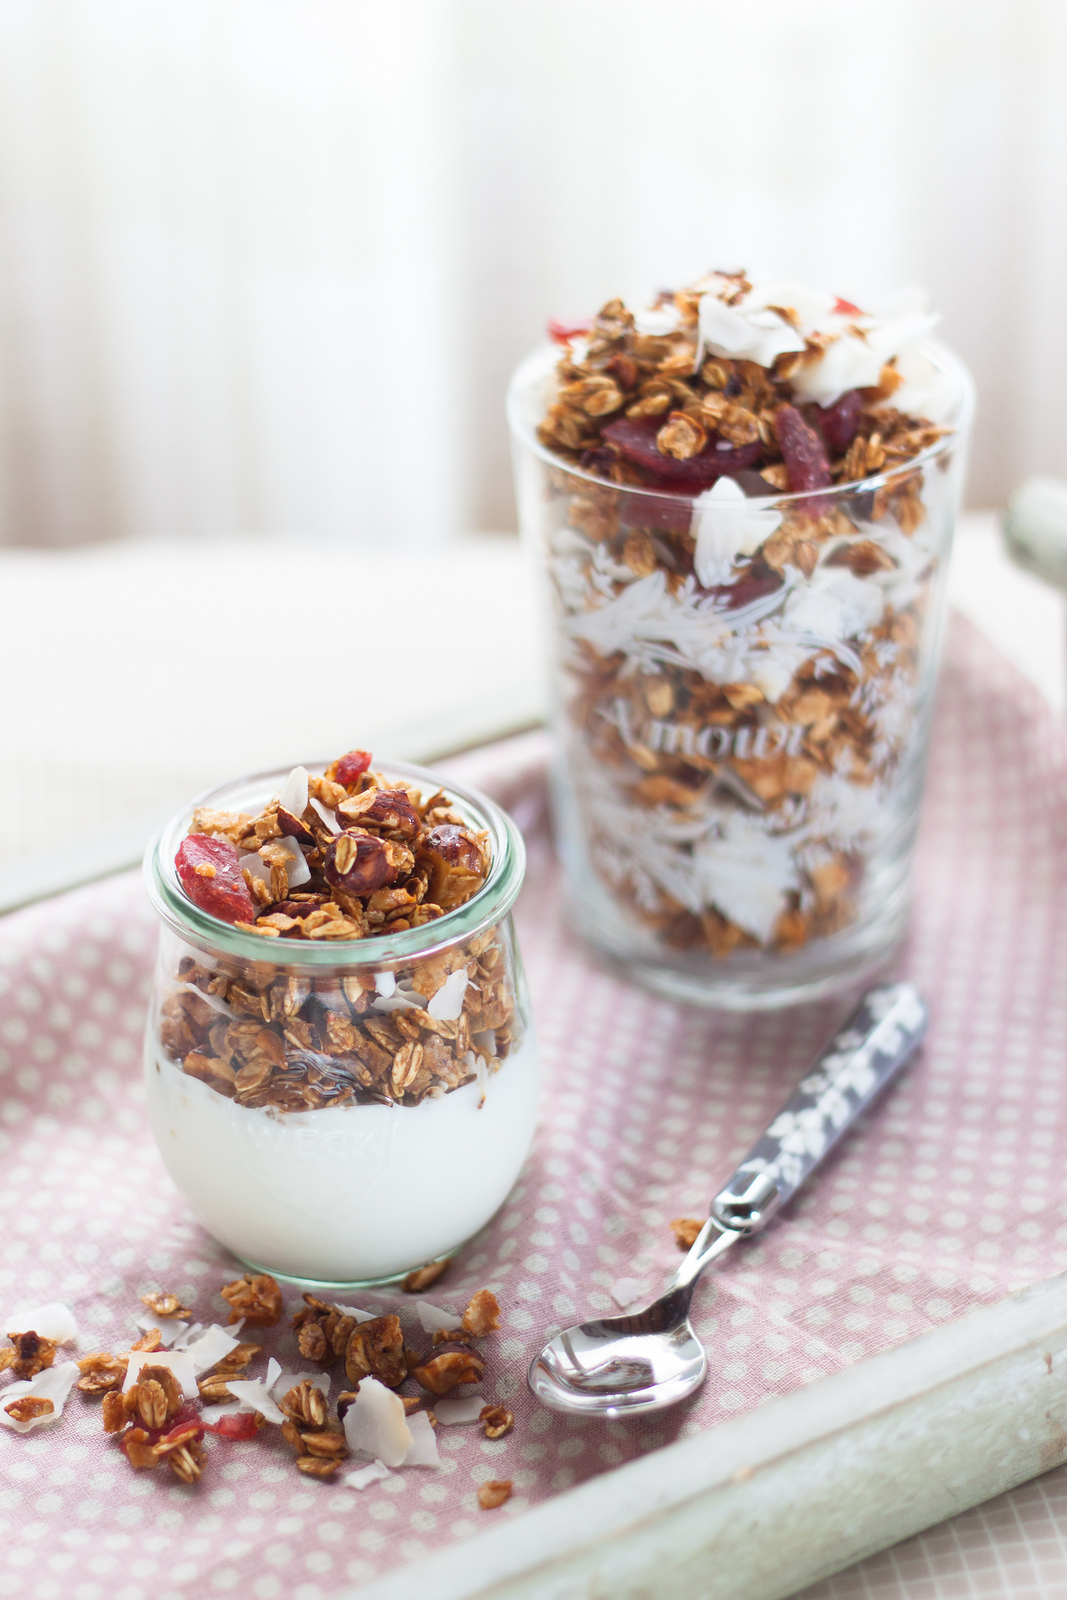 Everyone Wants To Be Special. Home-made Granola And Breakfast In Bed